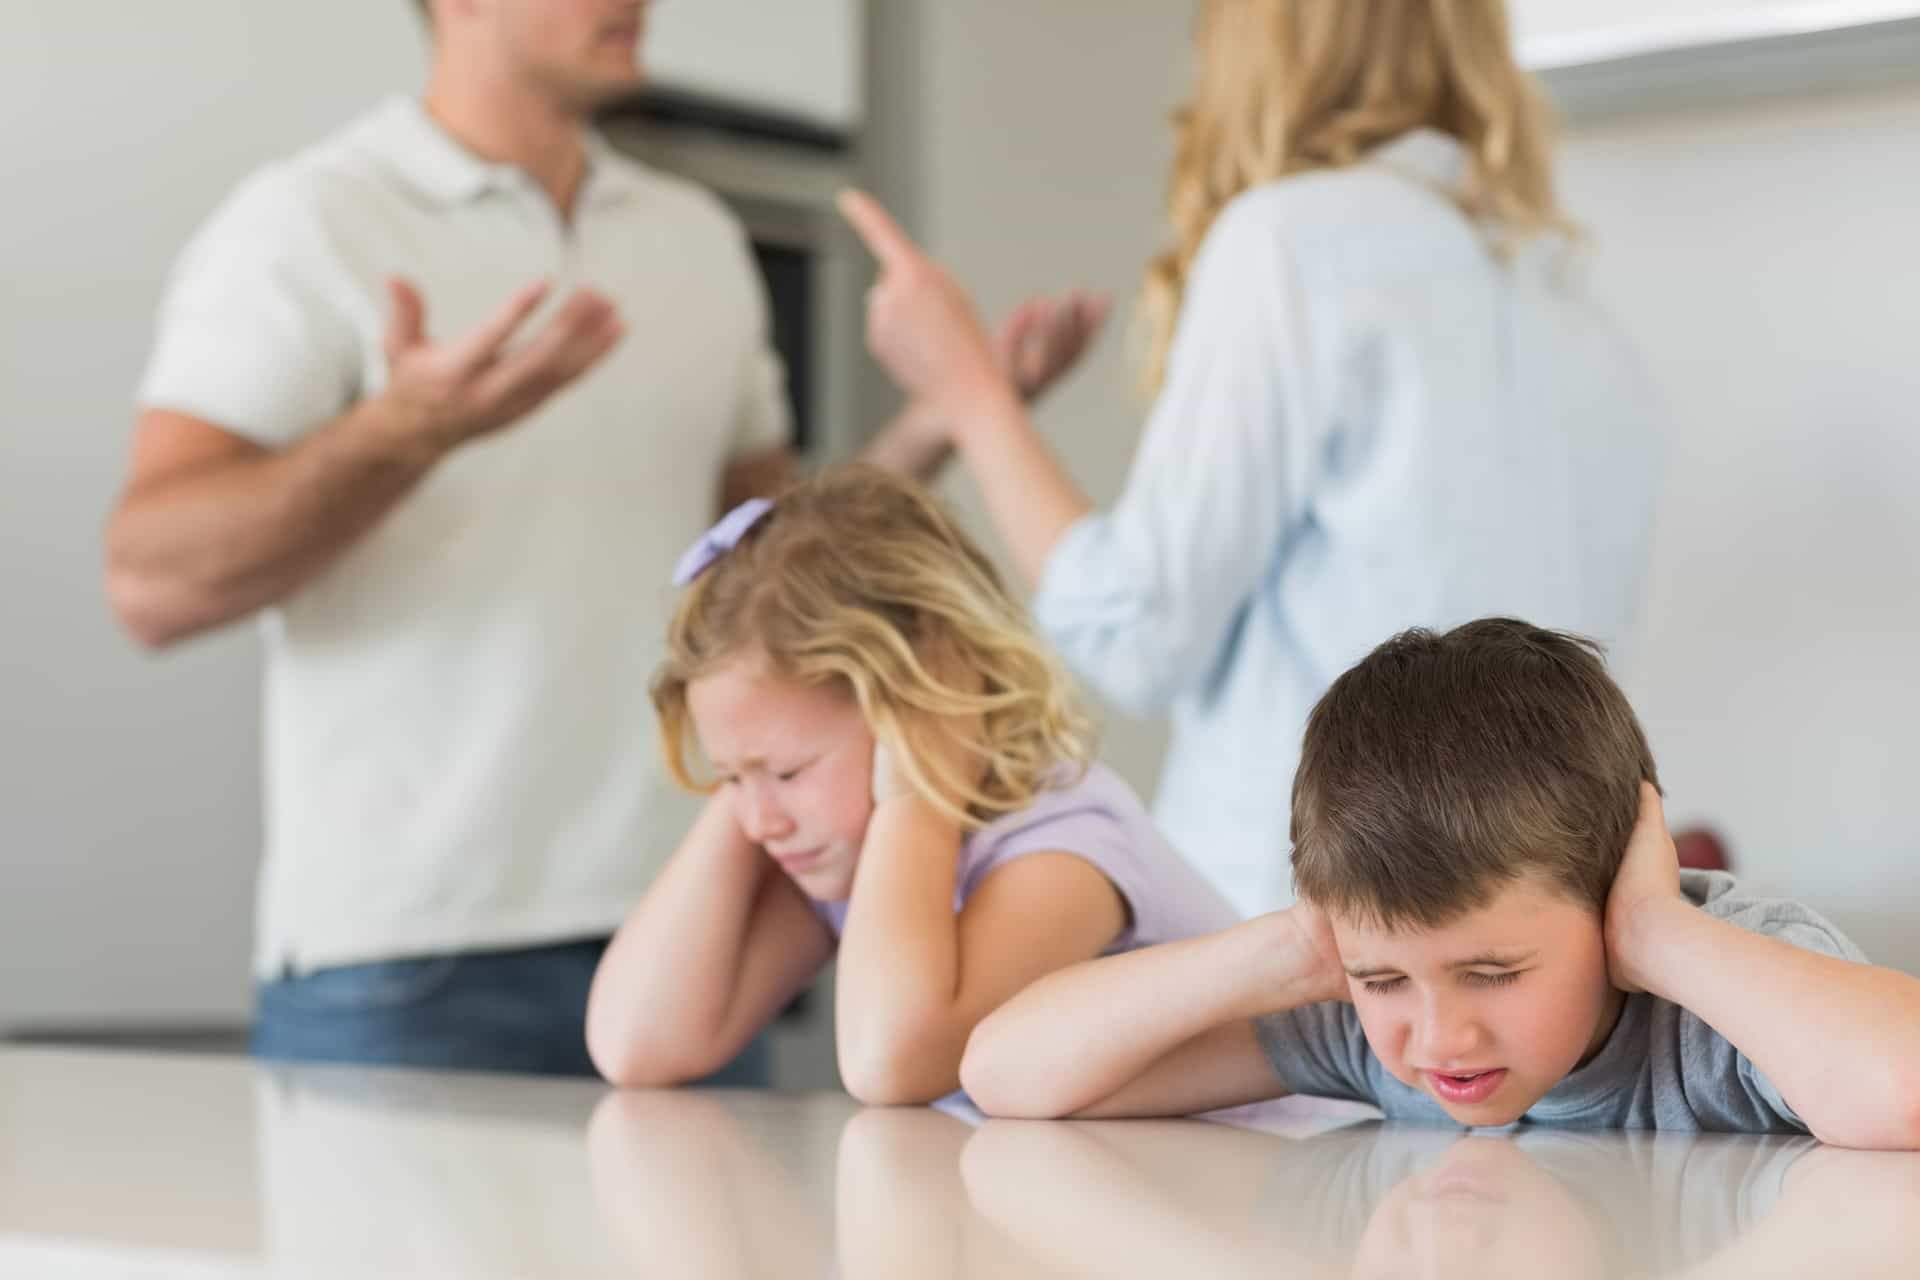 Kids stressed by divorce